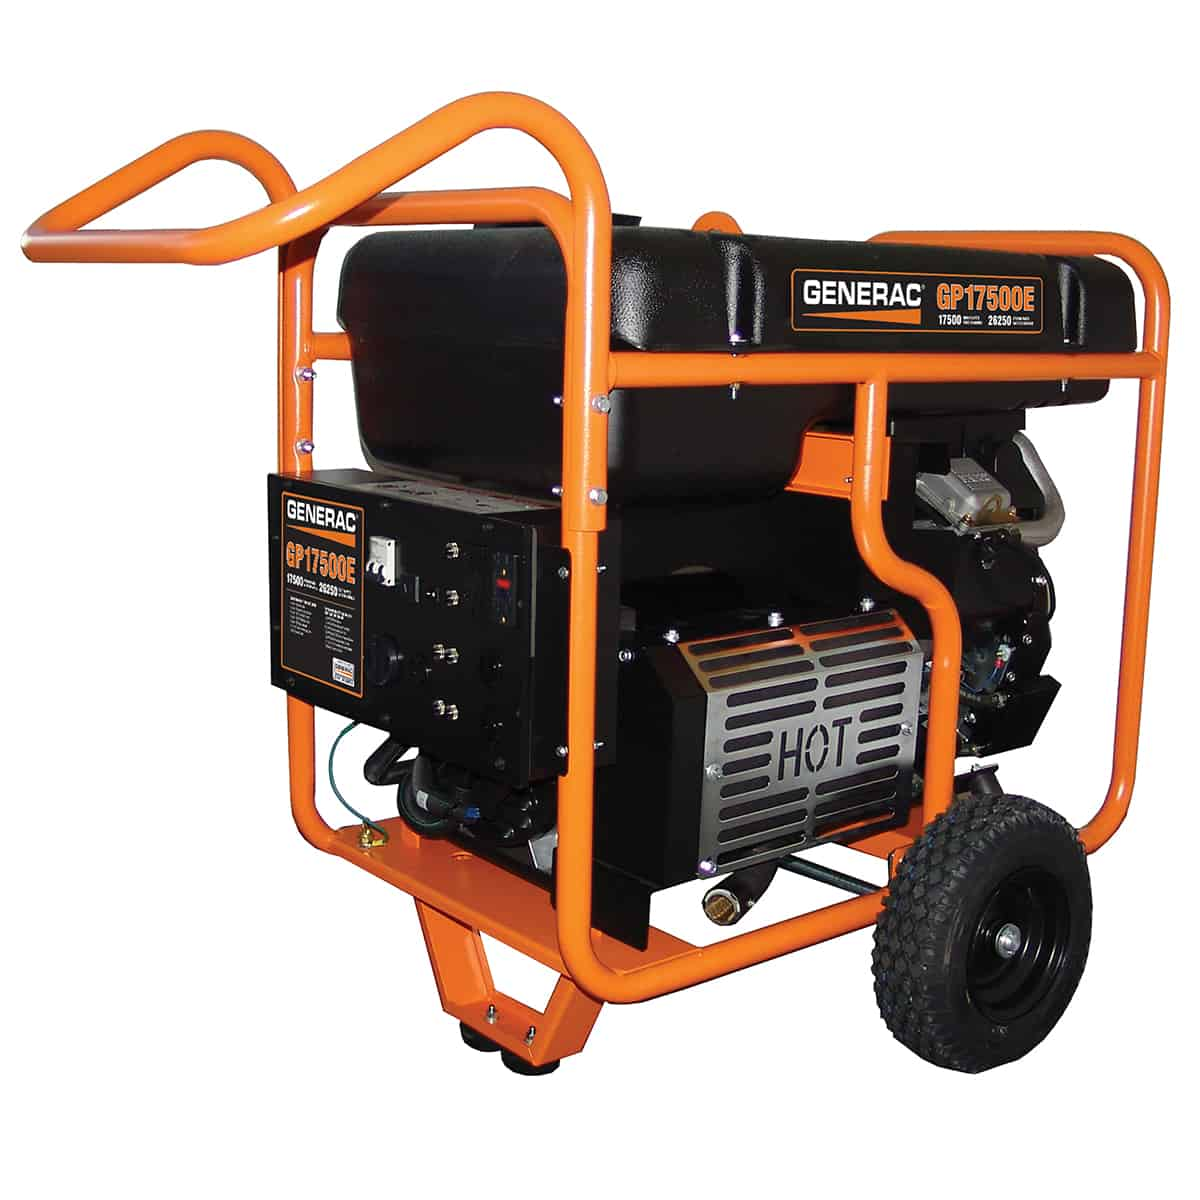 The Electric Start GP Portable Series from Generac